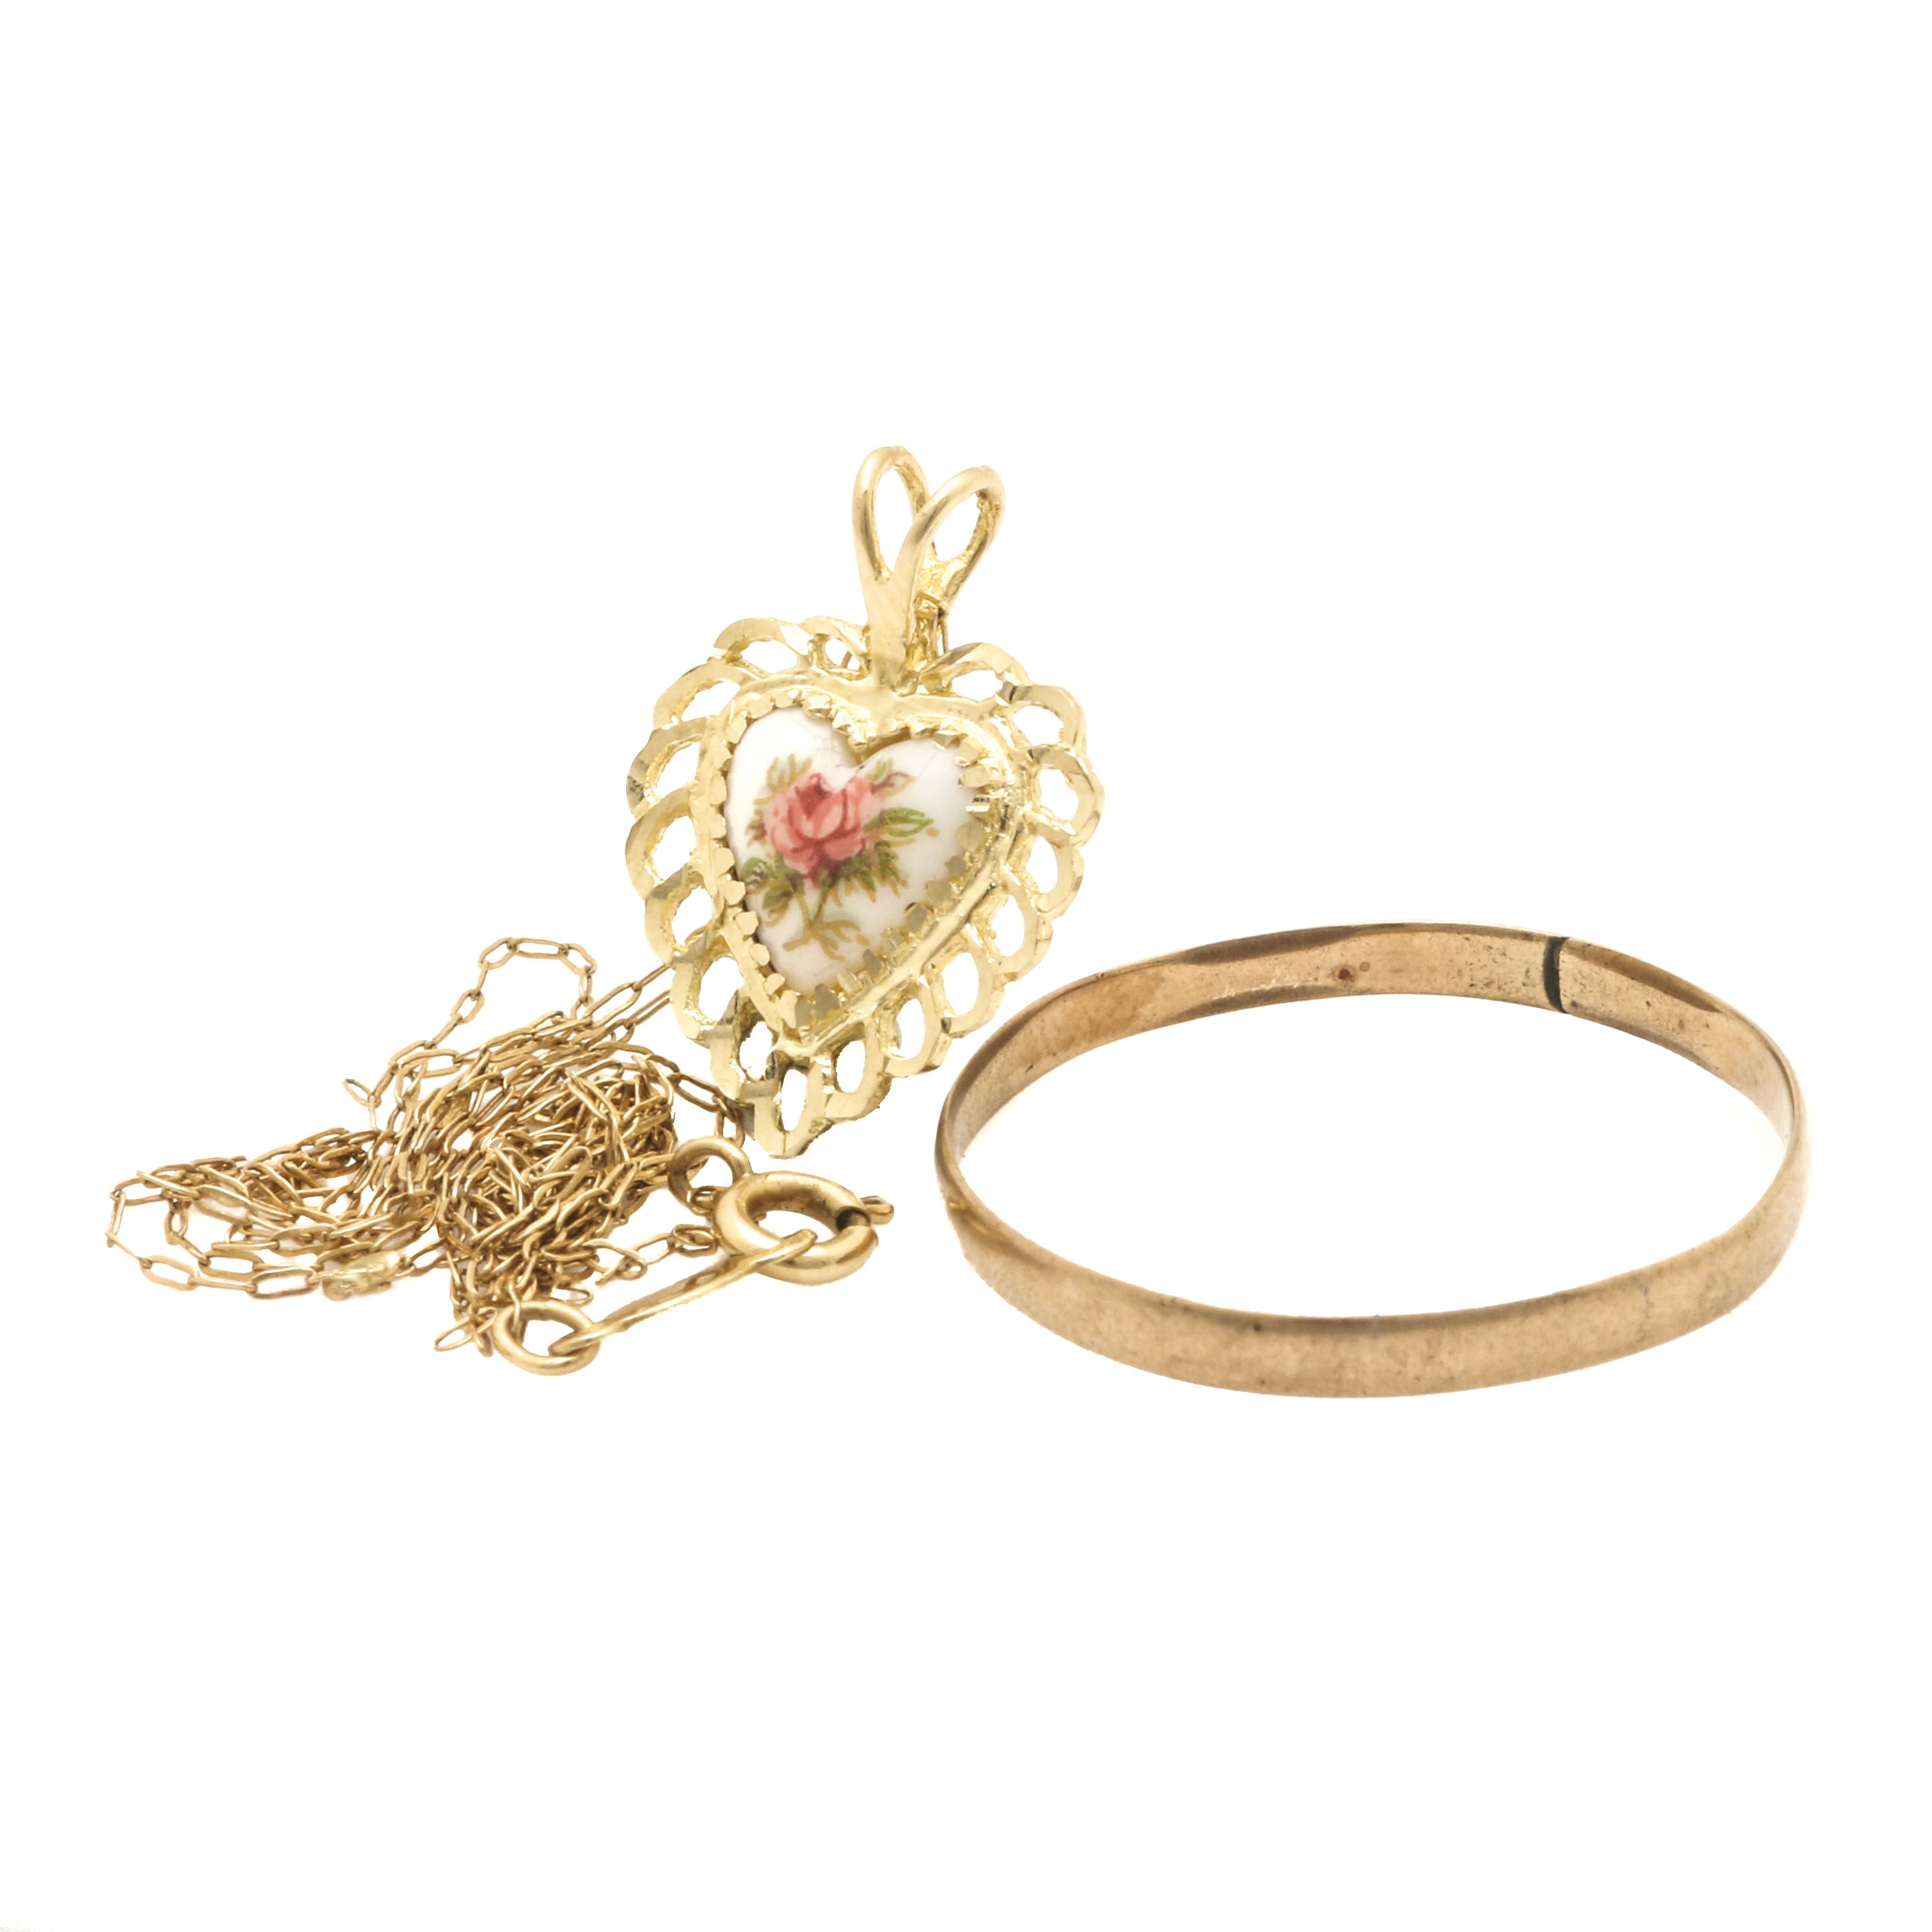 8K, 10K, and 14K Yellow Gold Ring and Pendant Necklace Selection